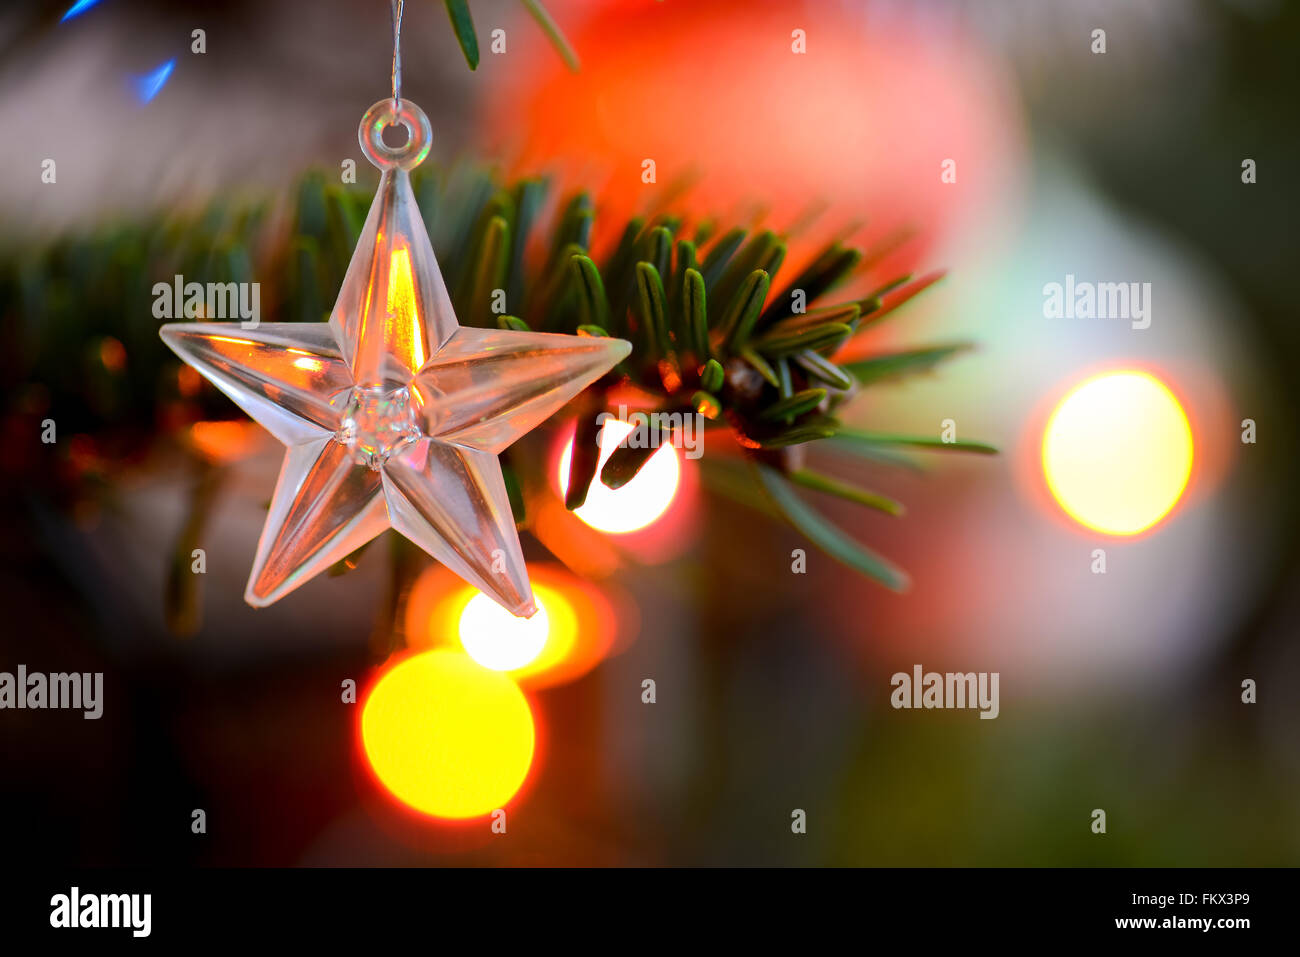 Starlet Christmas decorations hanging in tree - Stock Image